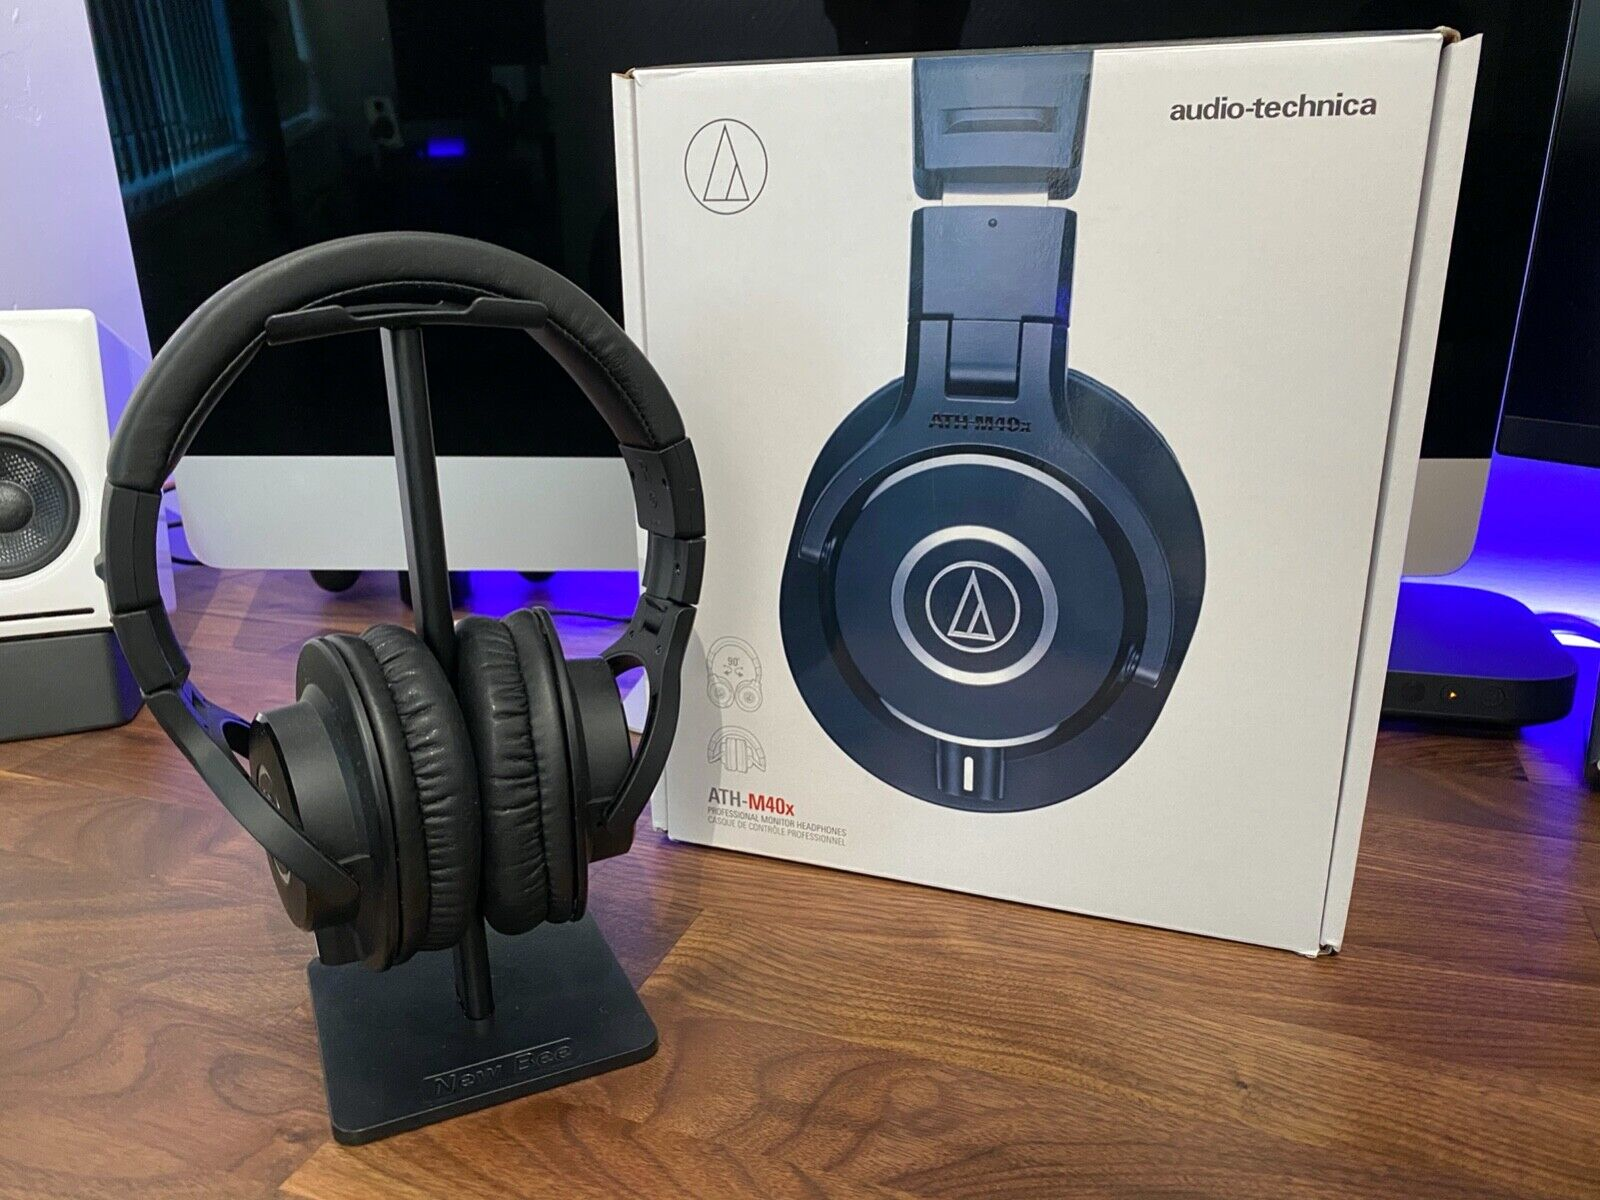 Audio-Technica ATH-M40x Over the Ear Professional Headphones DJ w/ Gaming Mic